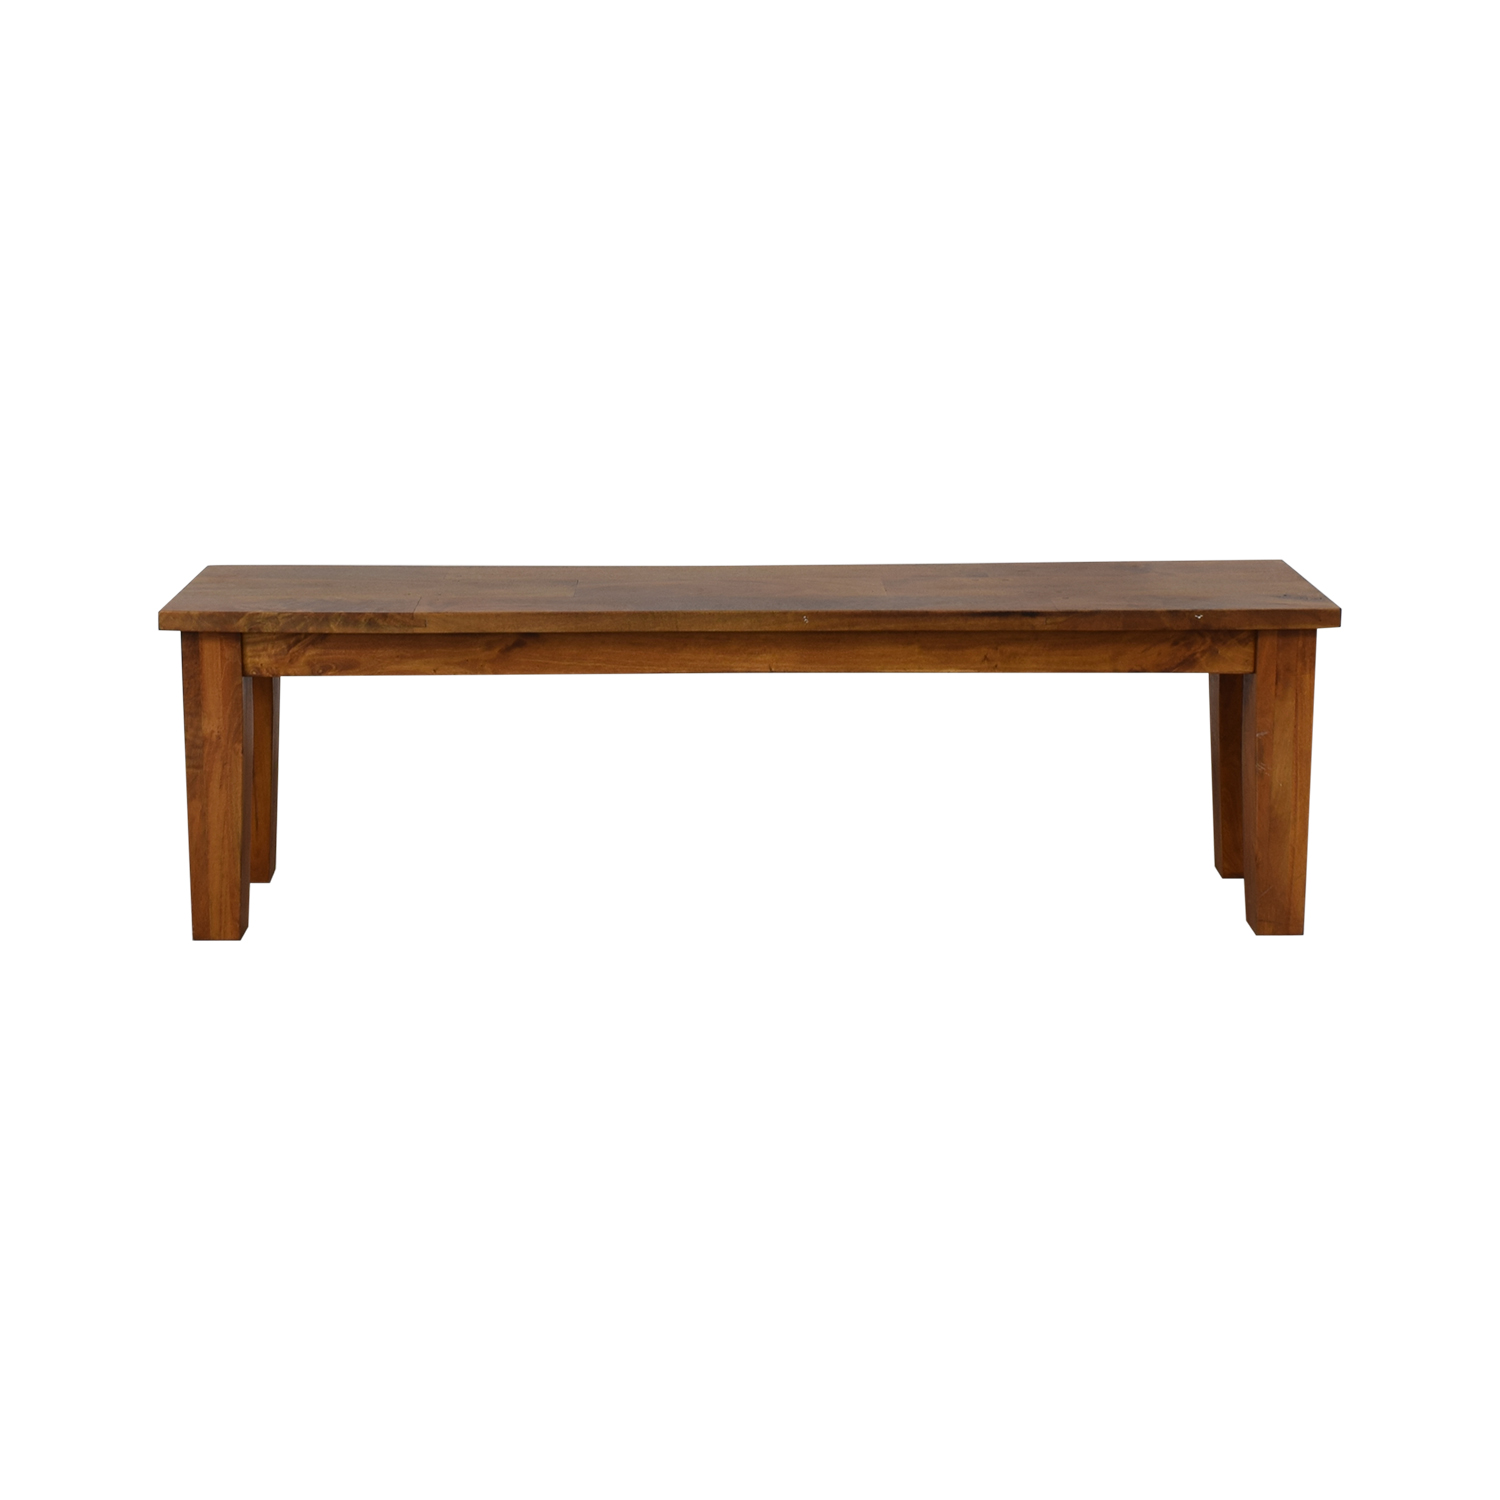 buy Crate & Barrel Basque Bench Crate & Barrel Chairs